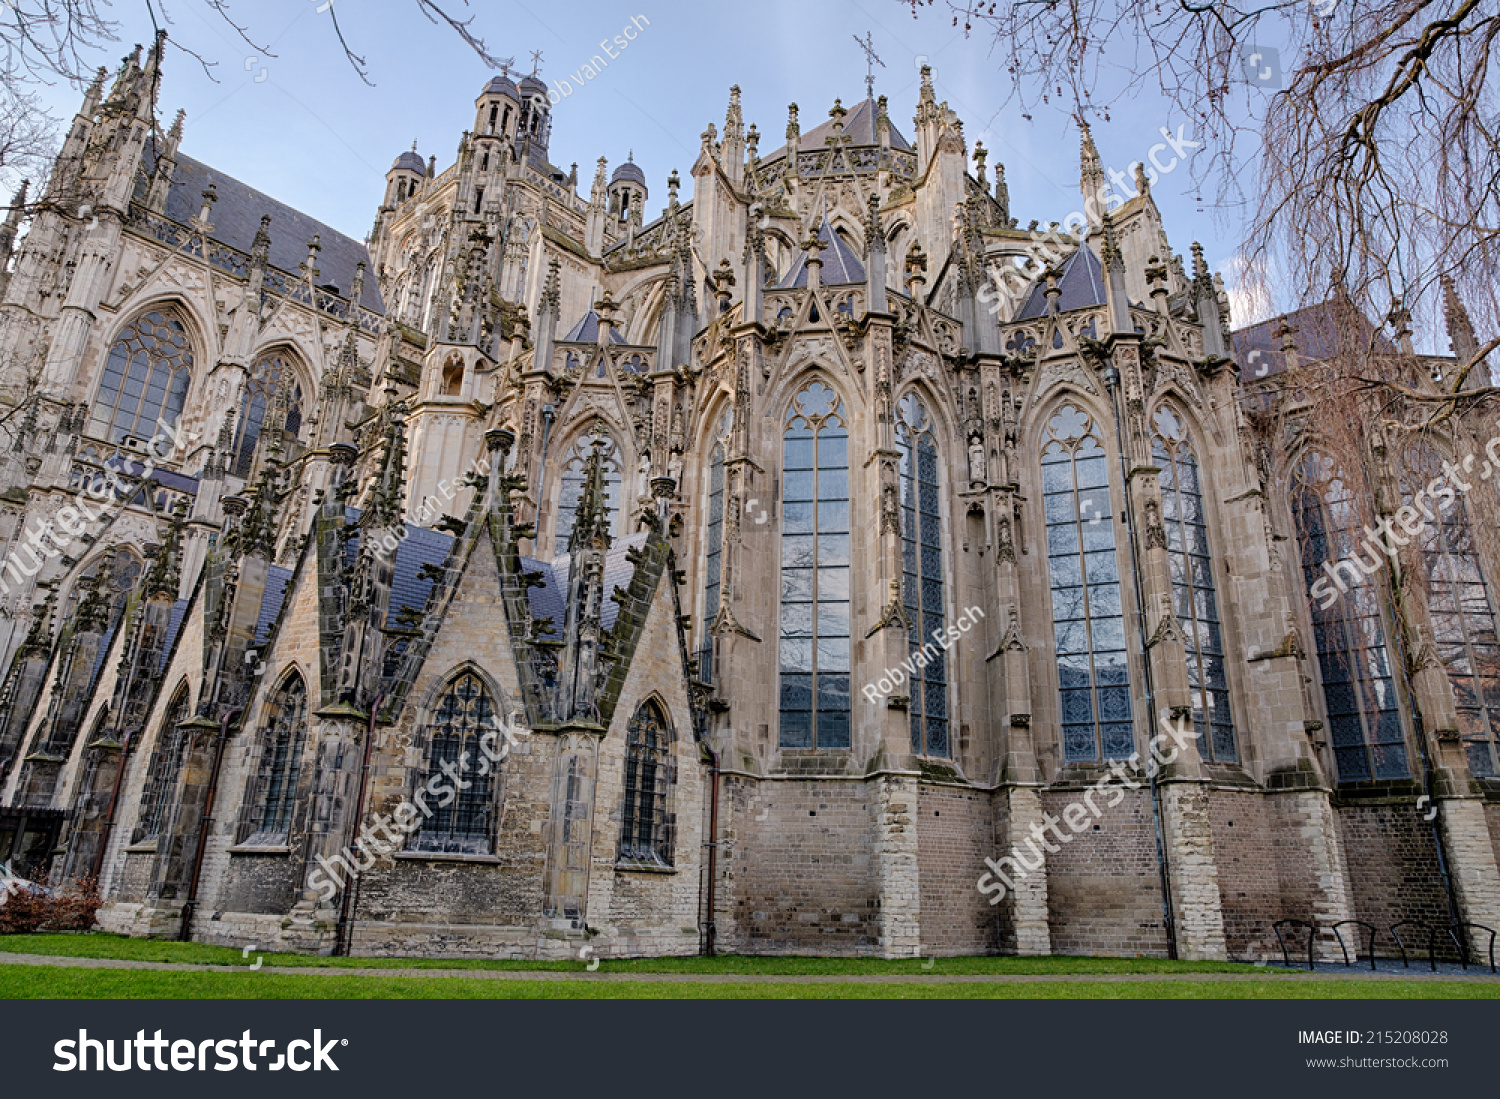 Exterior Gothic Medieval Cathedral Saint John Stock Photo Royalty Free 215208028